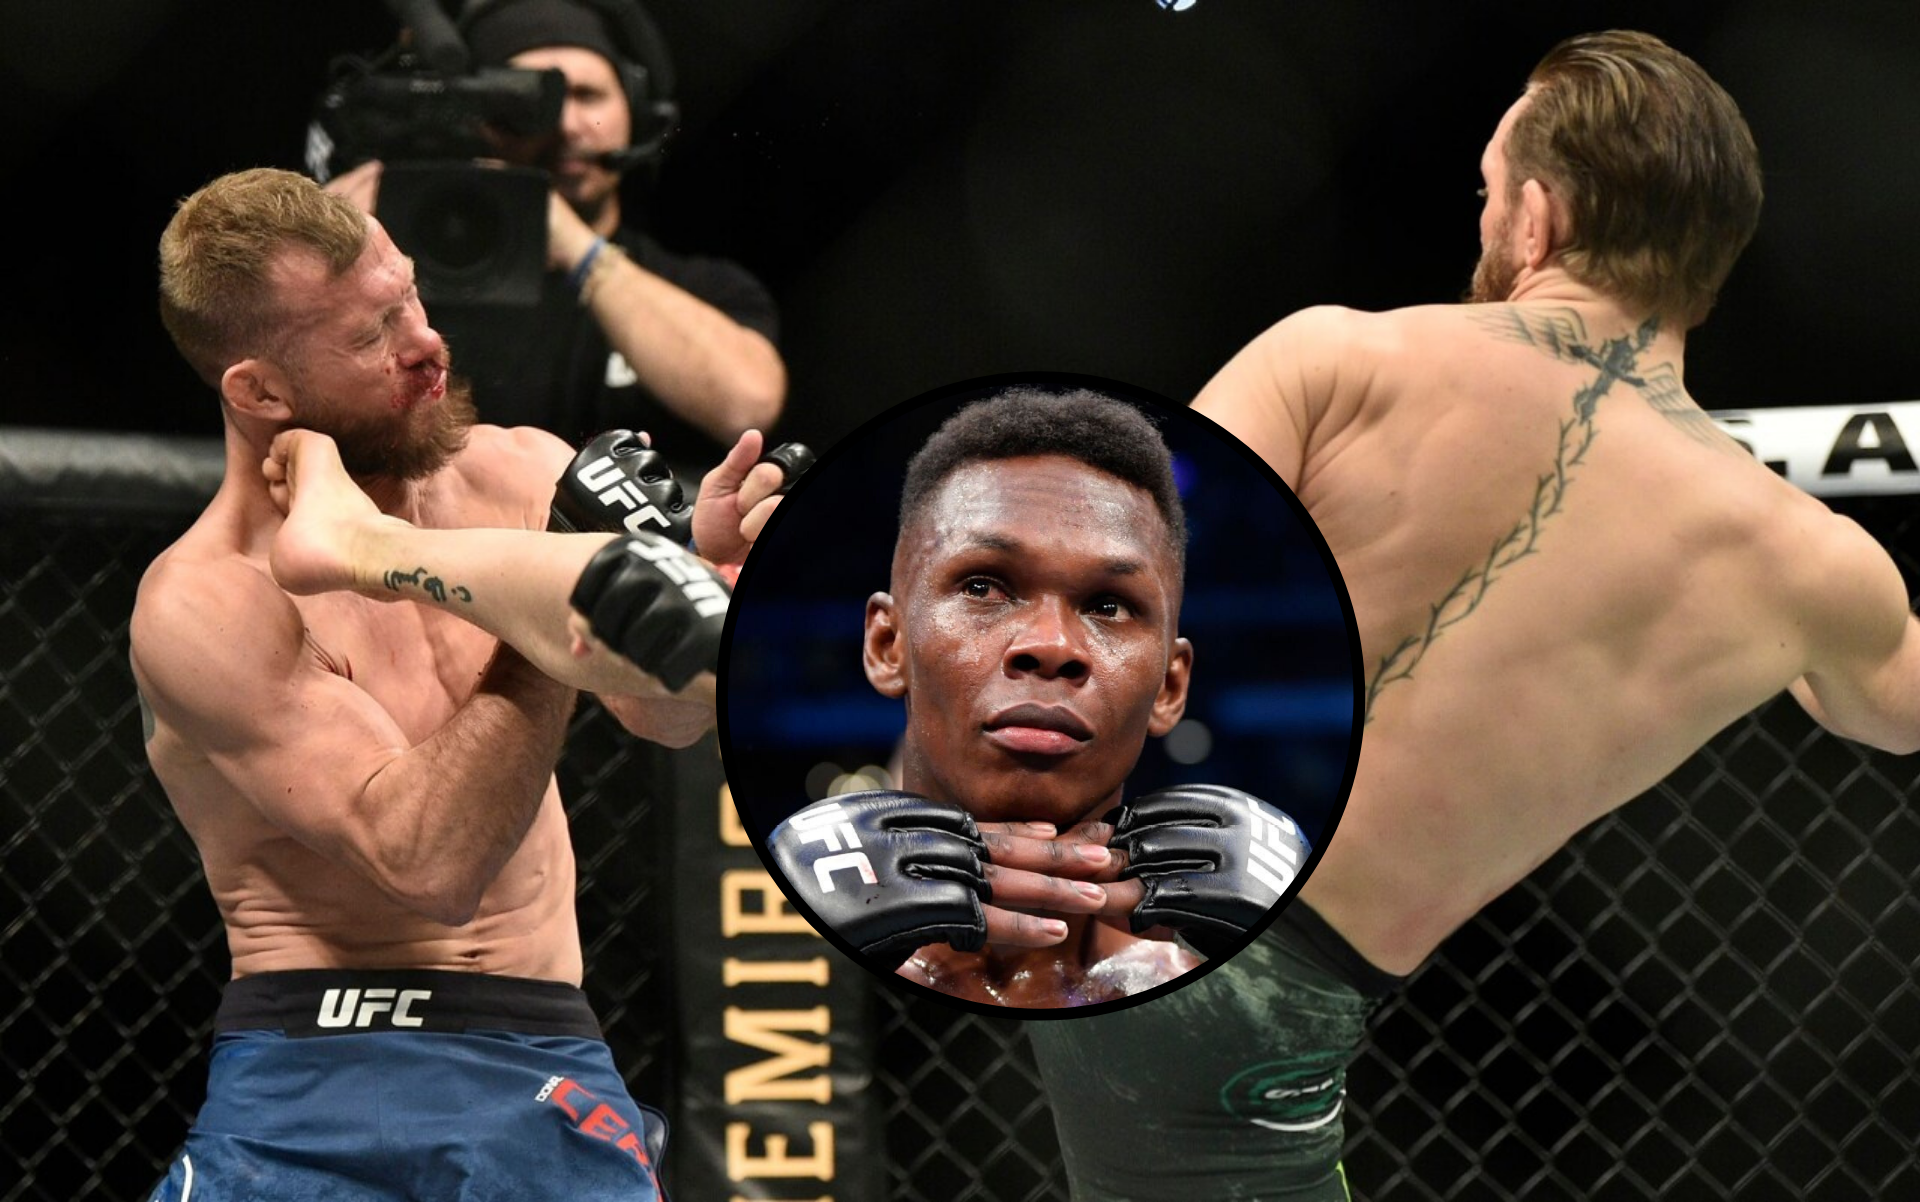 Israel Adesanya impressed with 'gangster' Conor McGregor shoulder strikes at UFC 246 - Adesanya